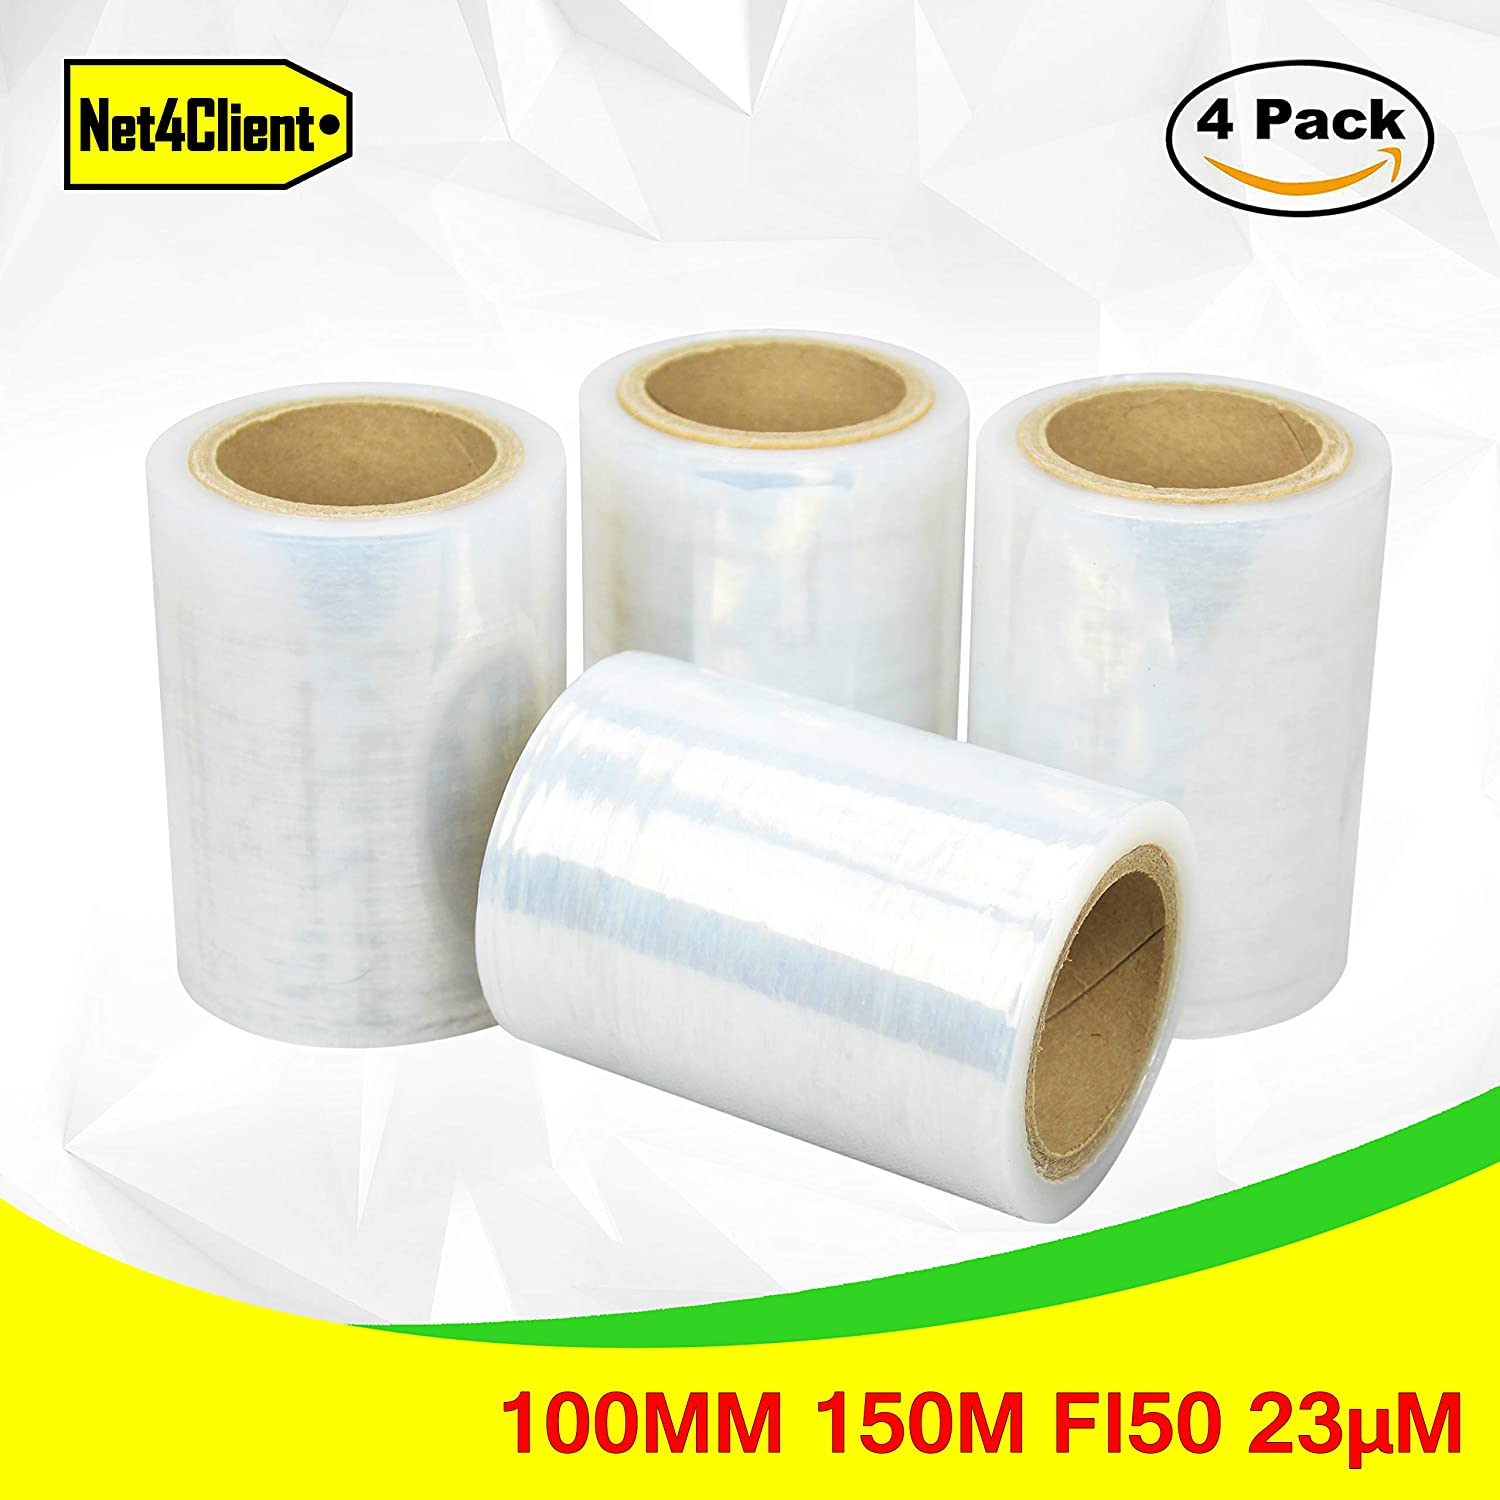 4 x Pack Strong Clear stretch Wrap by NET4CLIENT ® buona qualità impermeabile nastro adesivo foil Pro Stretch Packaging film in rotoli, 100 mm x 150 m x 23ΜM 100 mm x 150 m x 23ΜM